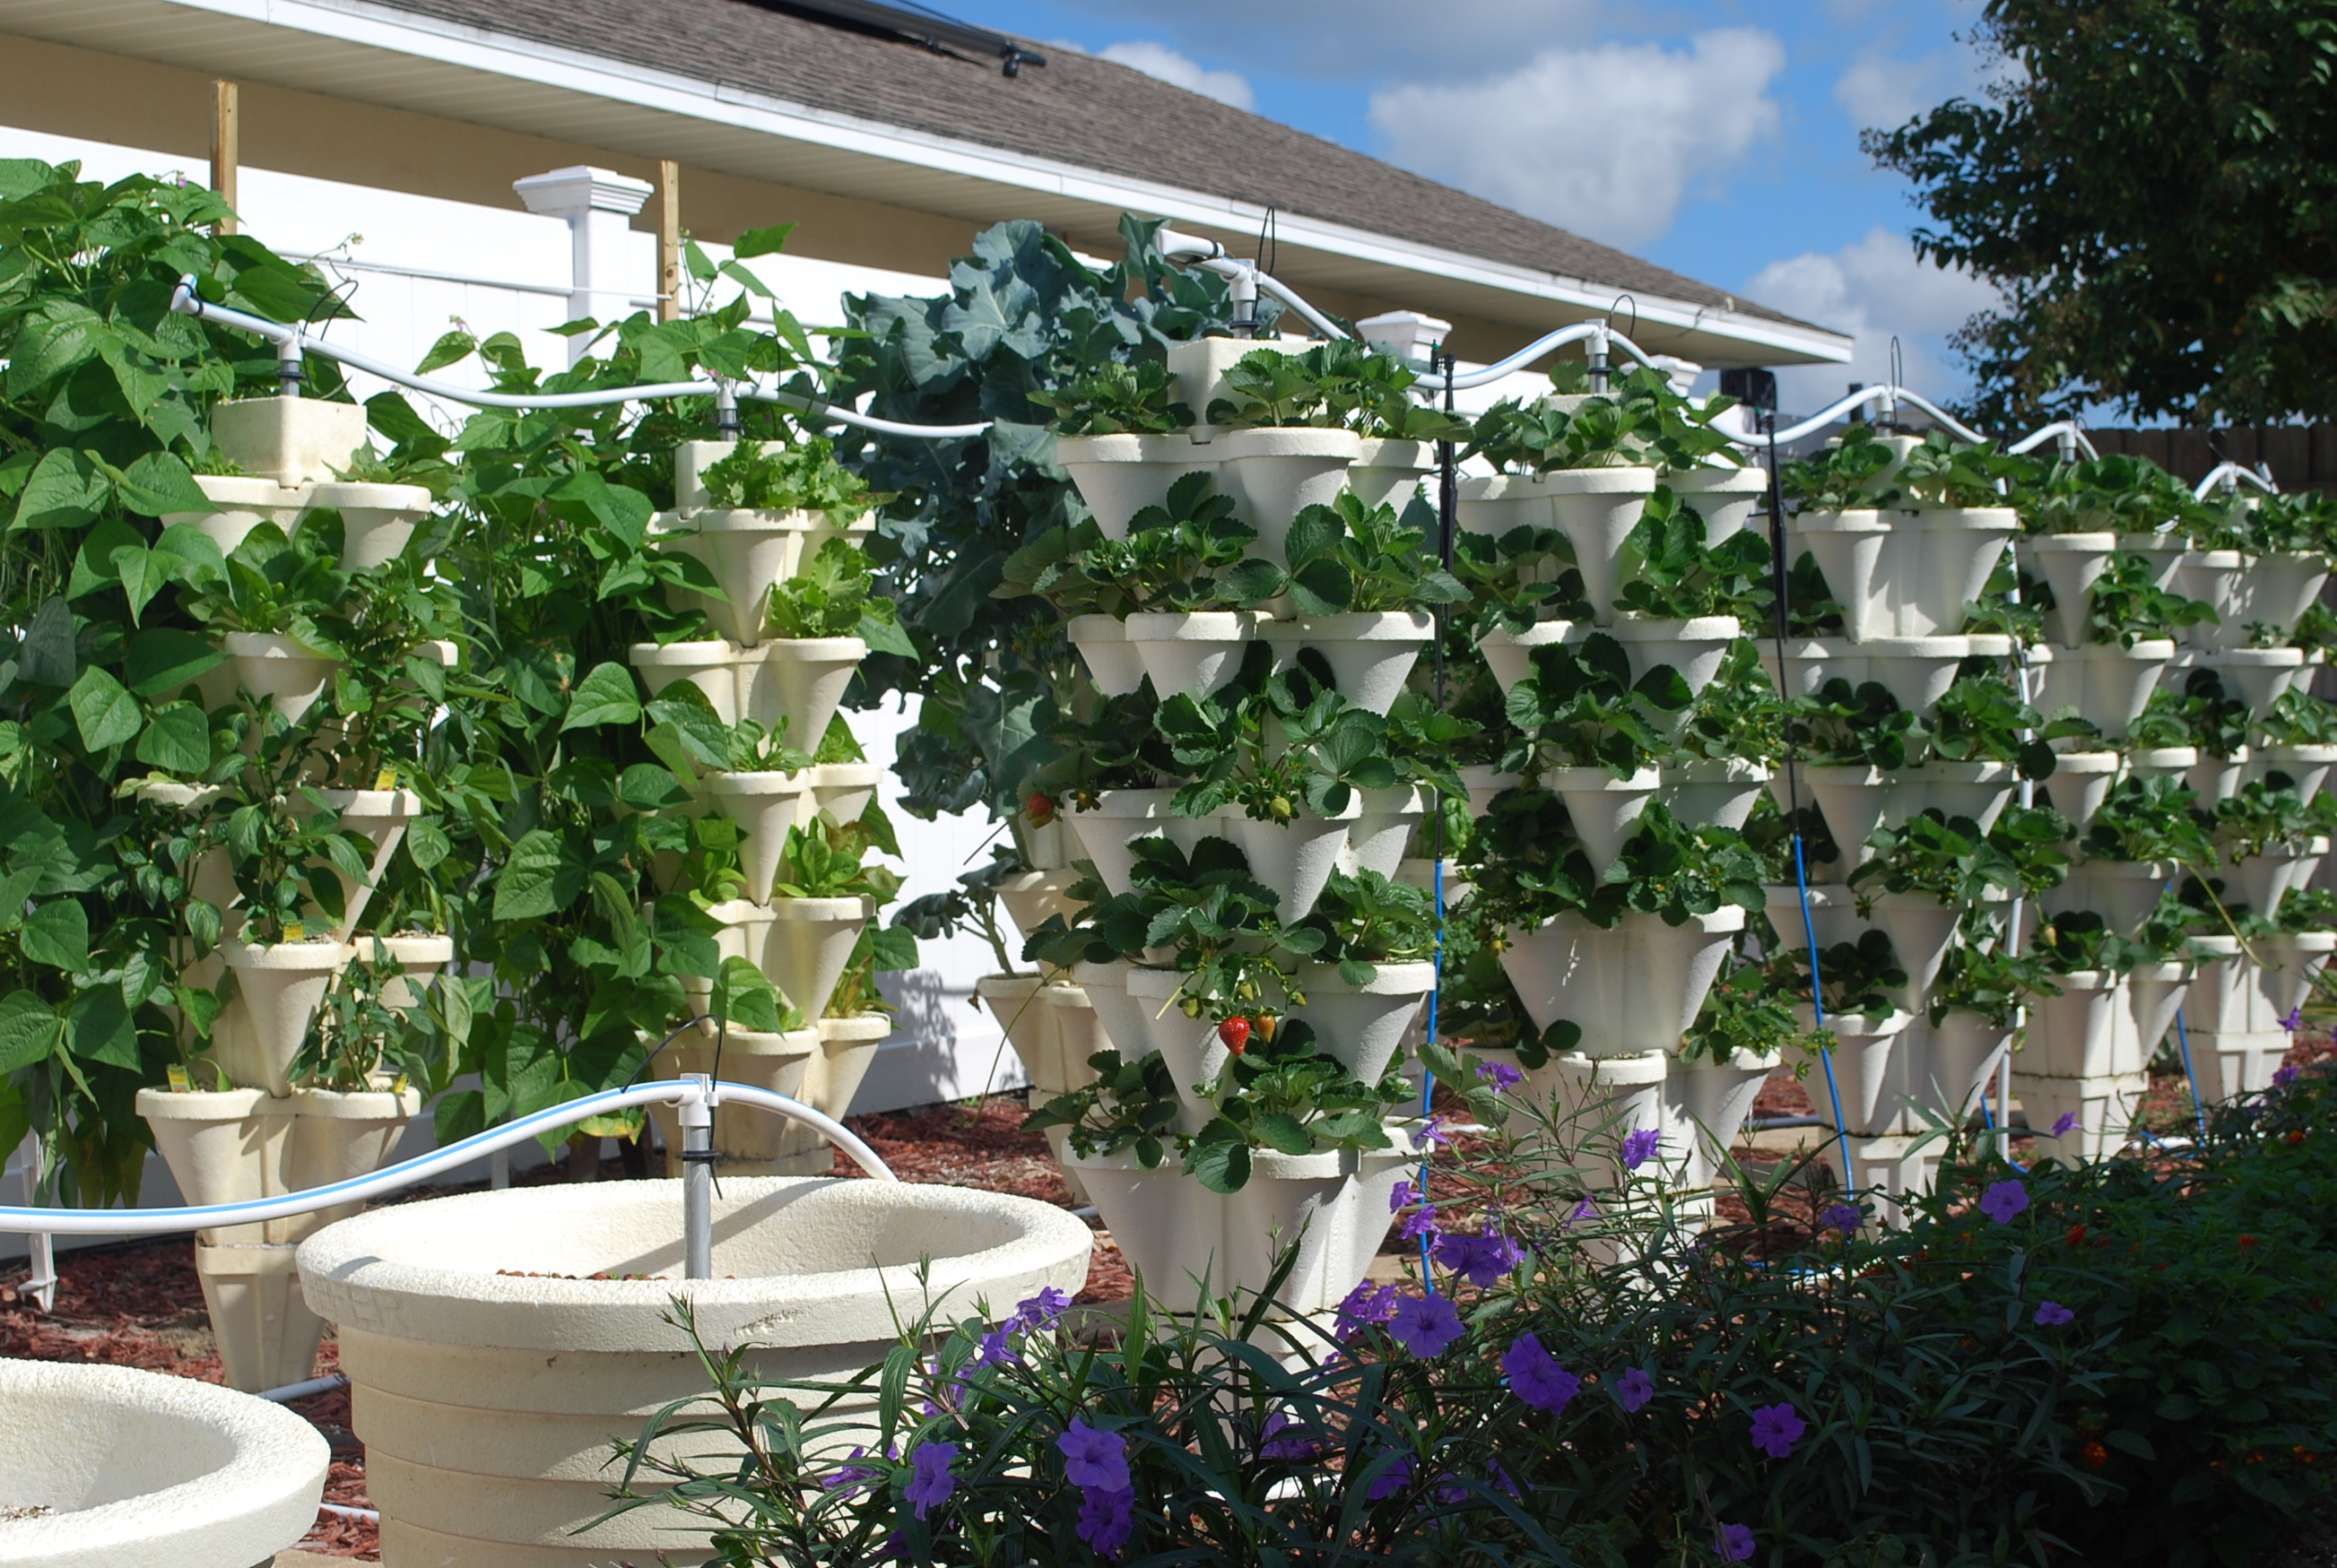 Ordinaire Hydroponic Home Garden. Have Backyard ...